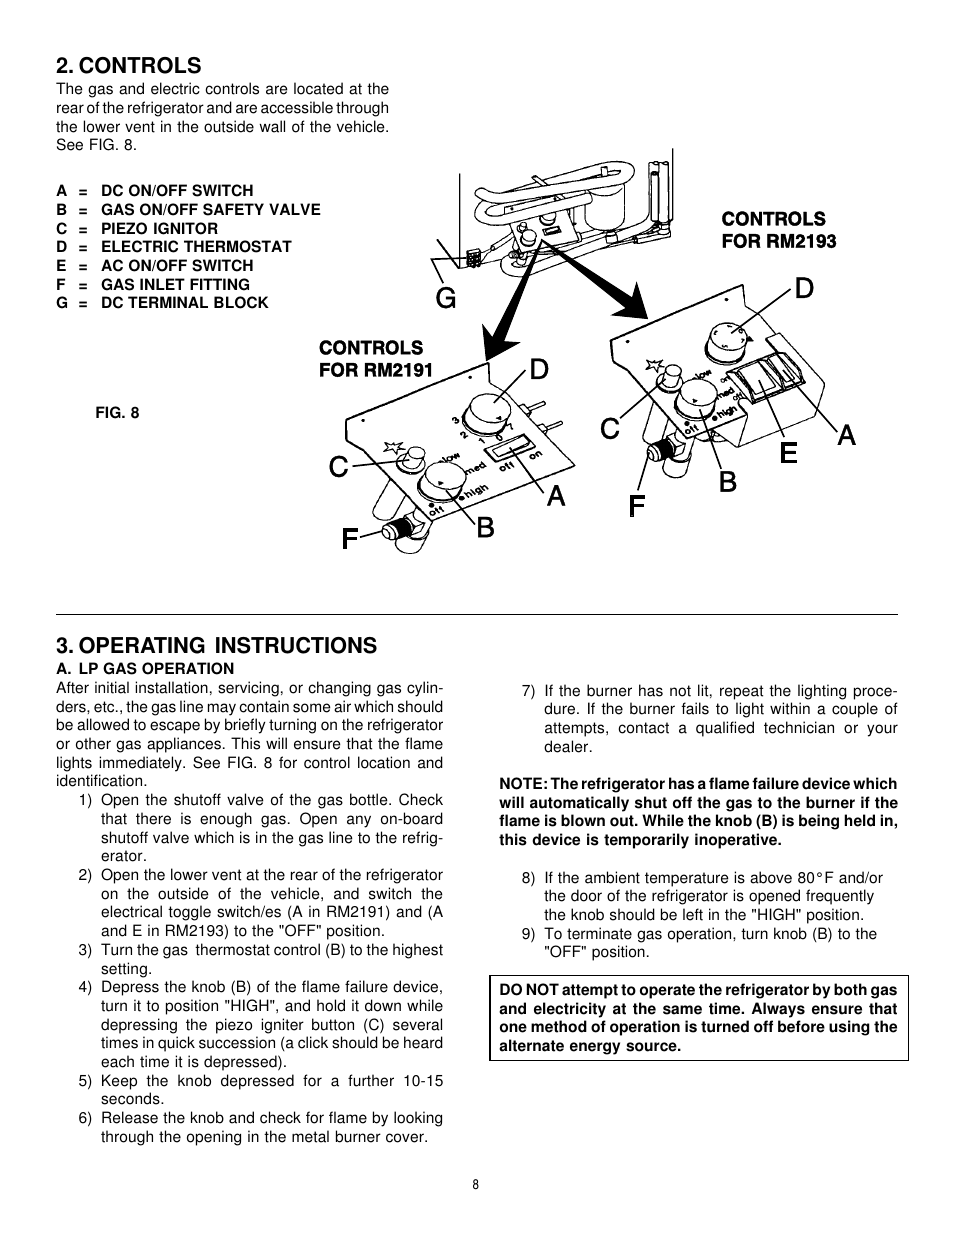 dometic rm2193 wiring diagram e36 fuse box controls operating instructions rm2191 user manual page 8 12